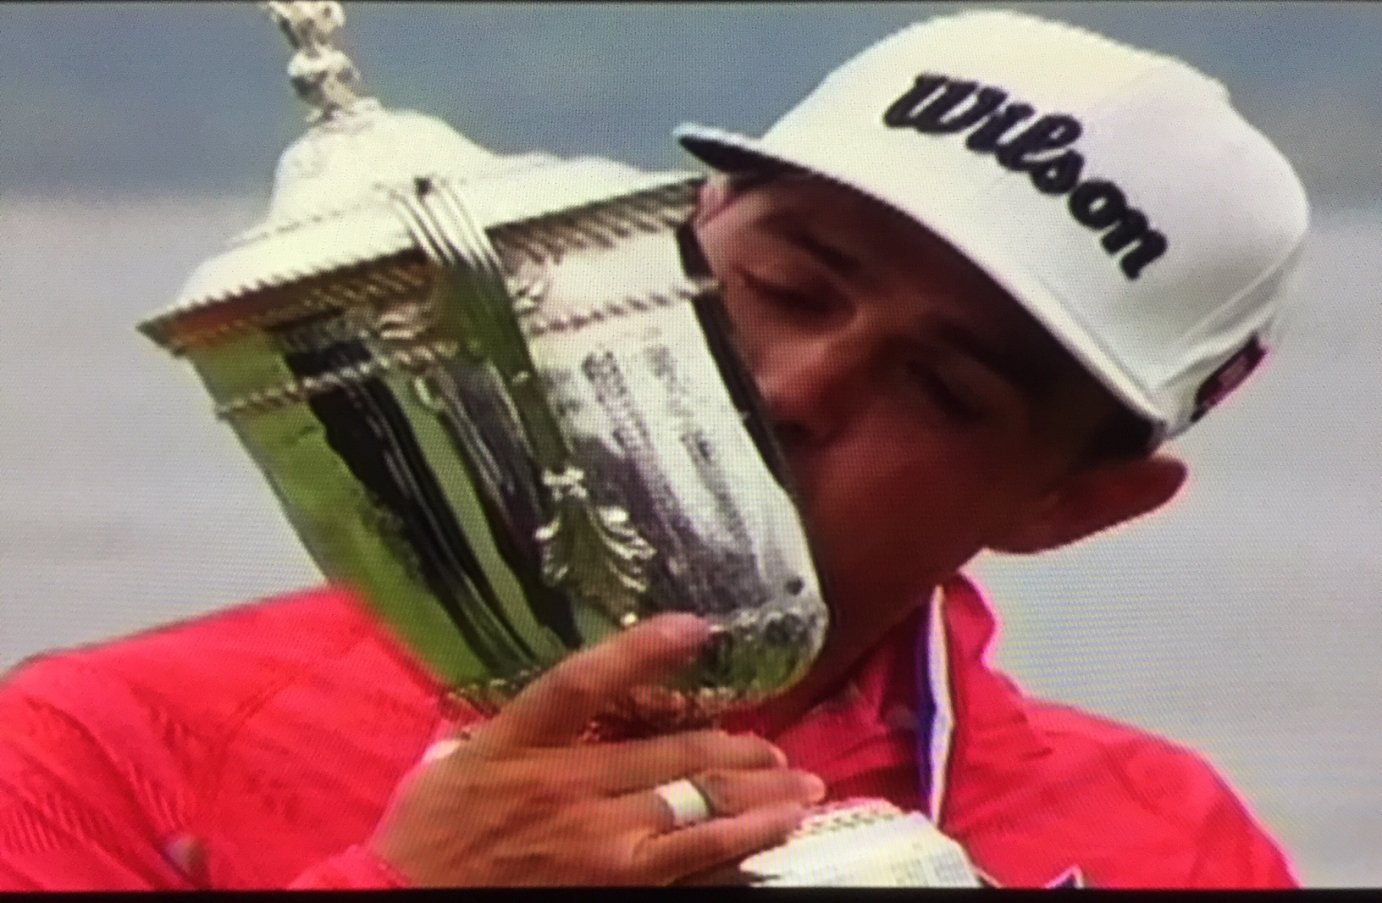 Topeka native Gary Woodland kissing the U.S. Open trophy after winning his first major at Pebble Beach Sunday afternoon. (Photo from FOX Sports)